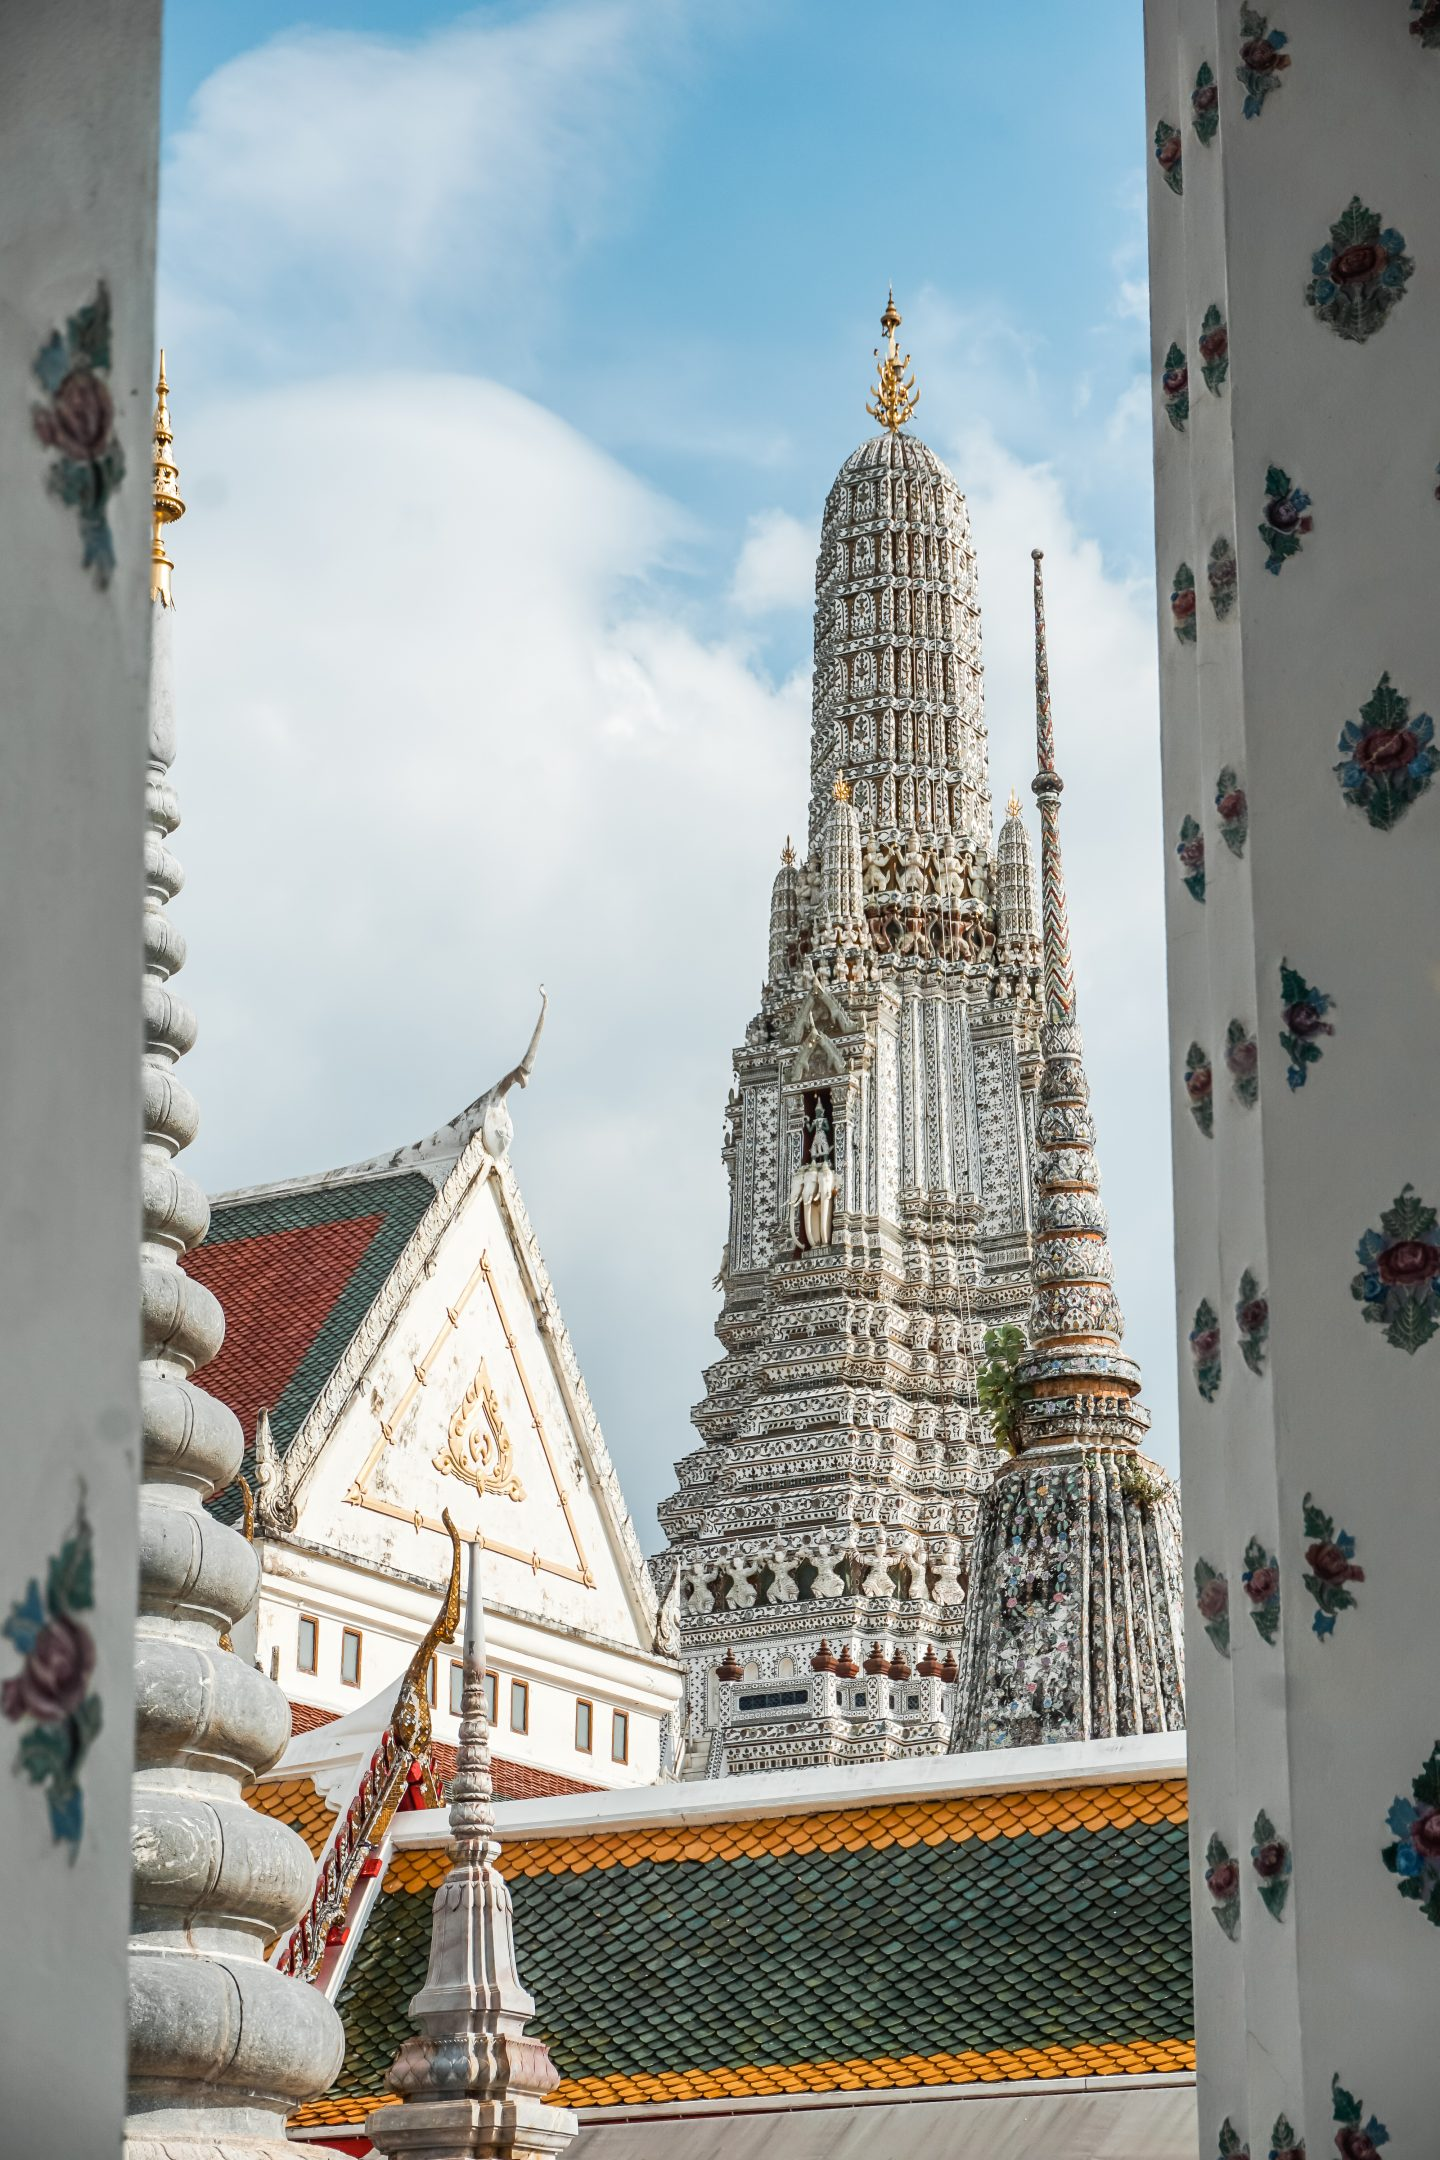 wat arun temple - best things to do in 48 hours in Bangkok